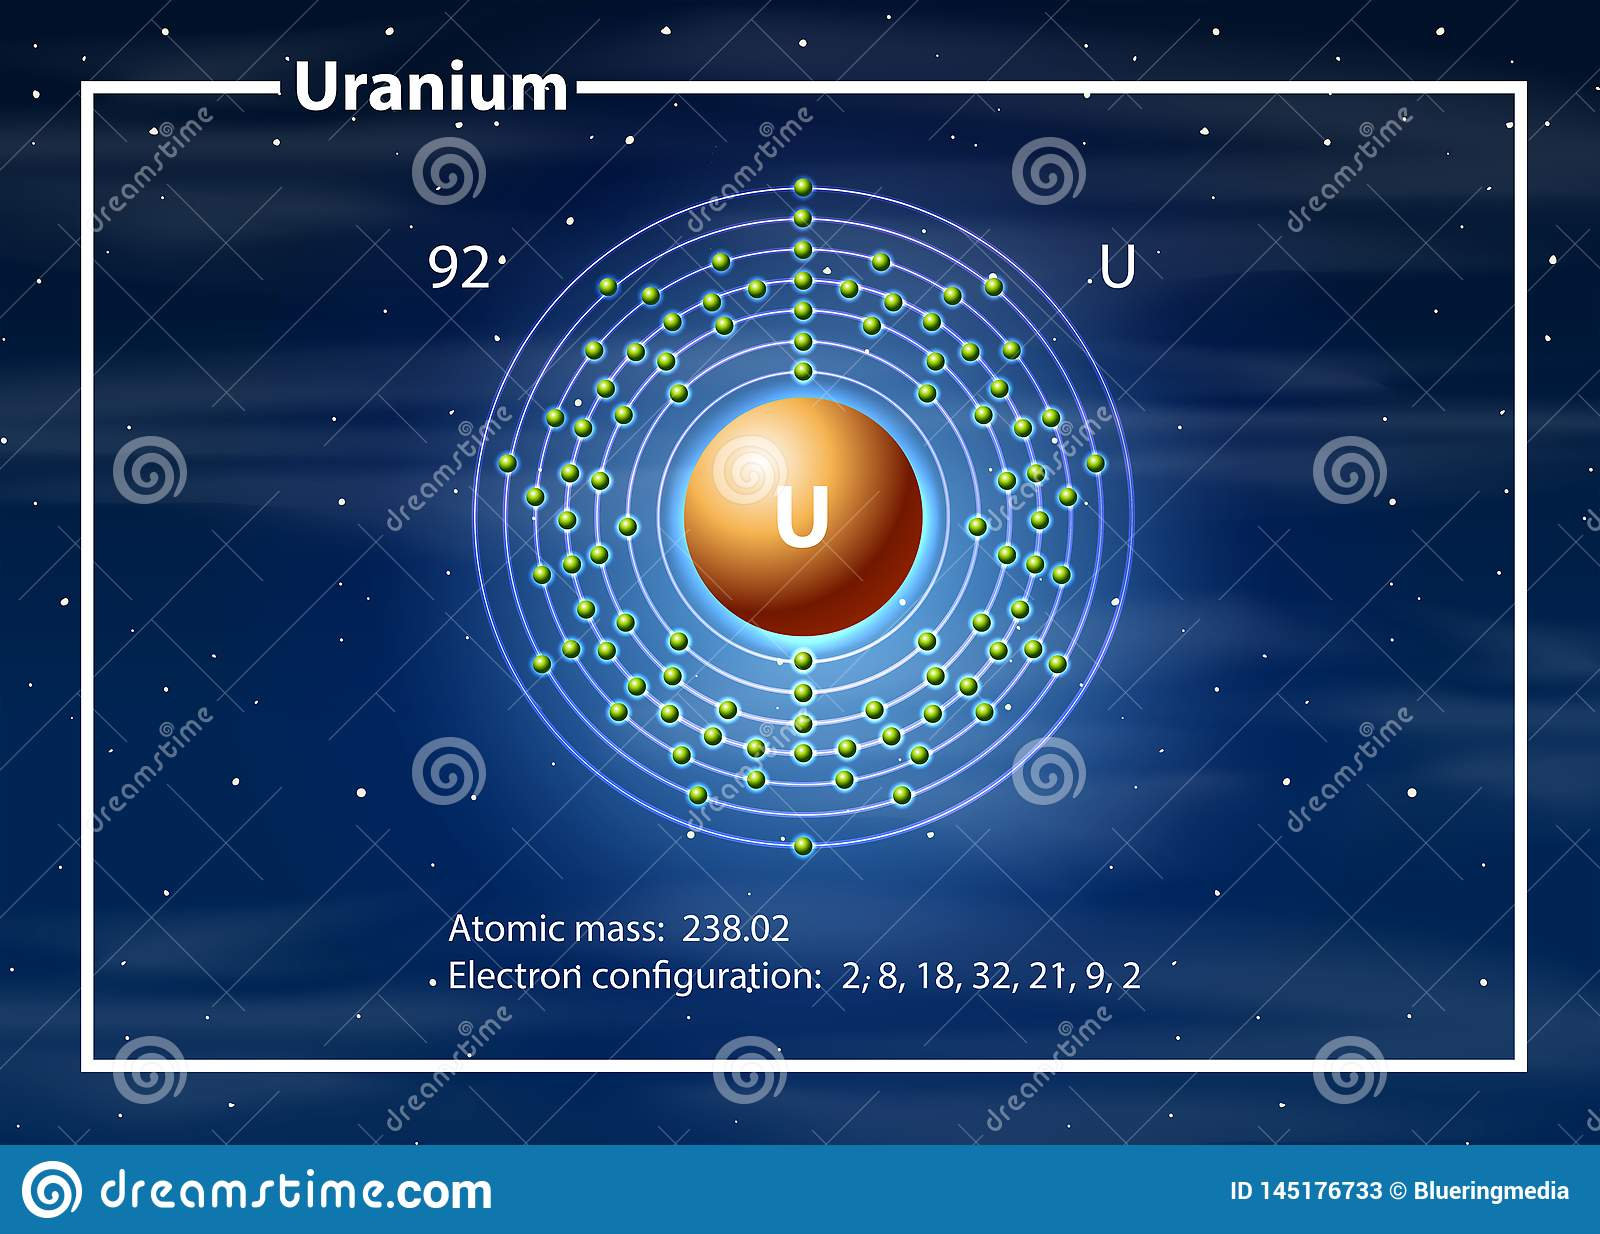 hight resolution of uranium atom stock illustrations 2 225 uranium atom stock illustrations vectors clipart dreamstime